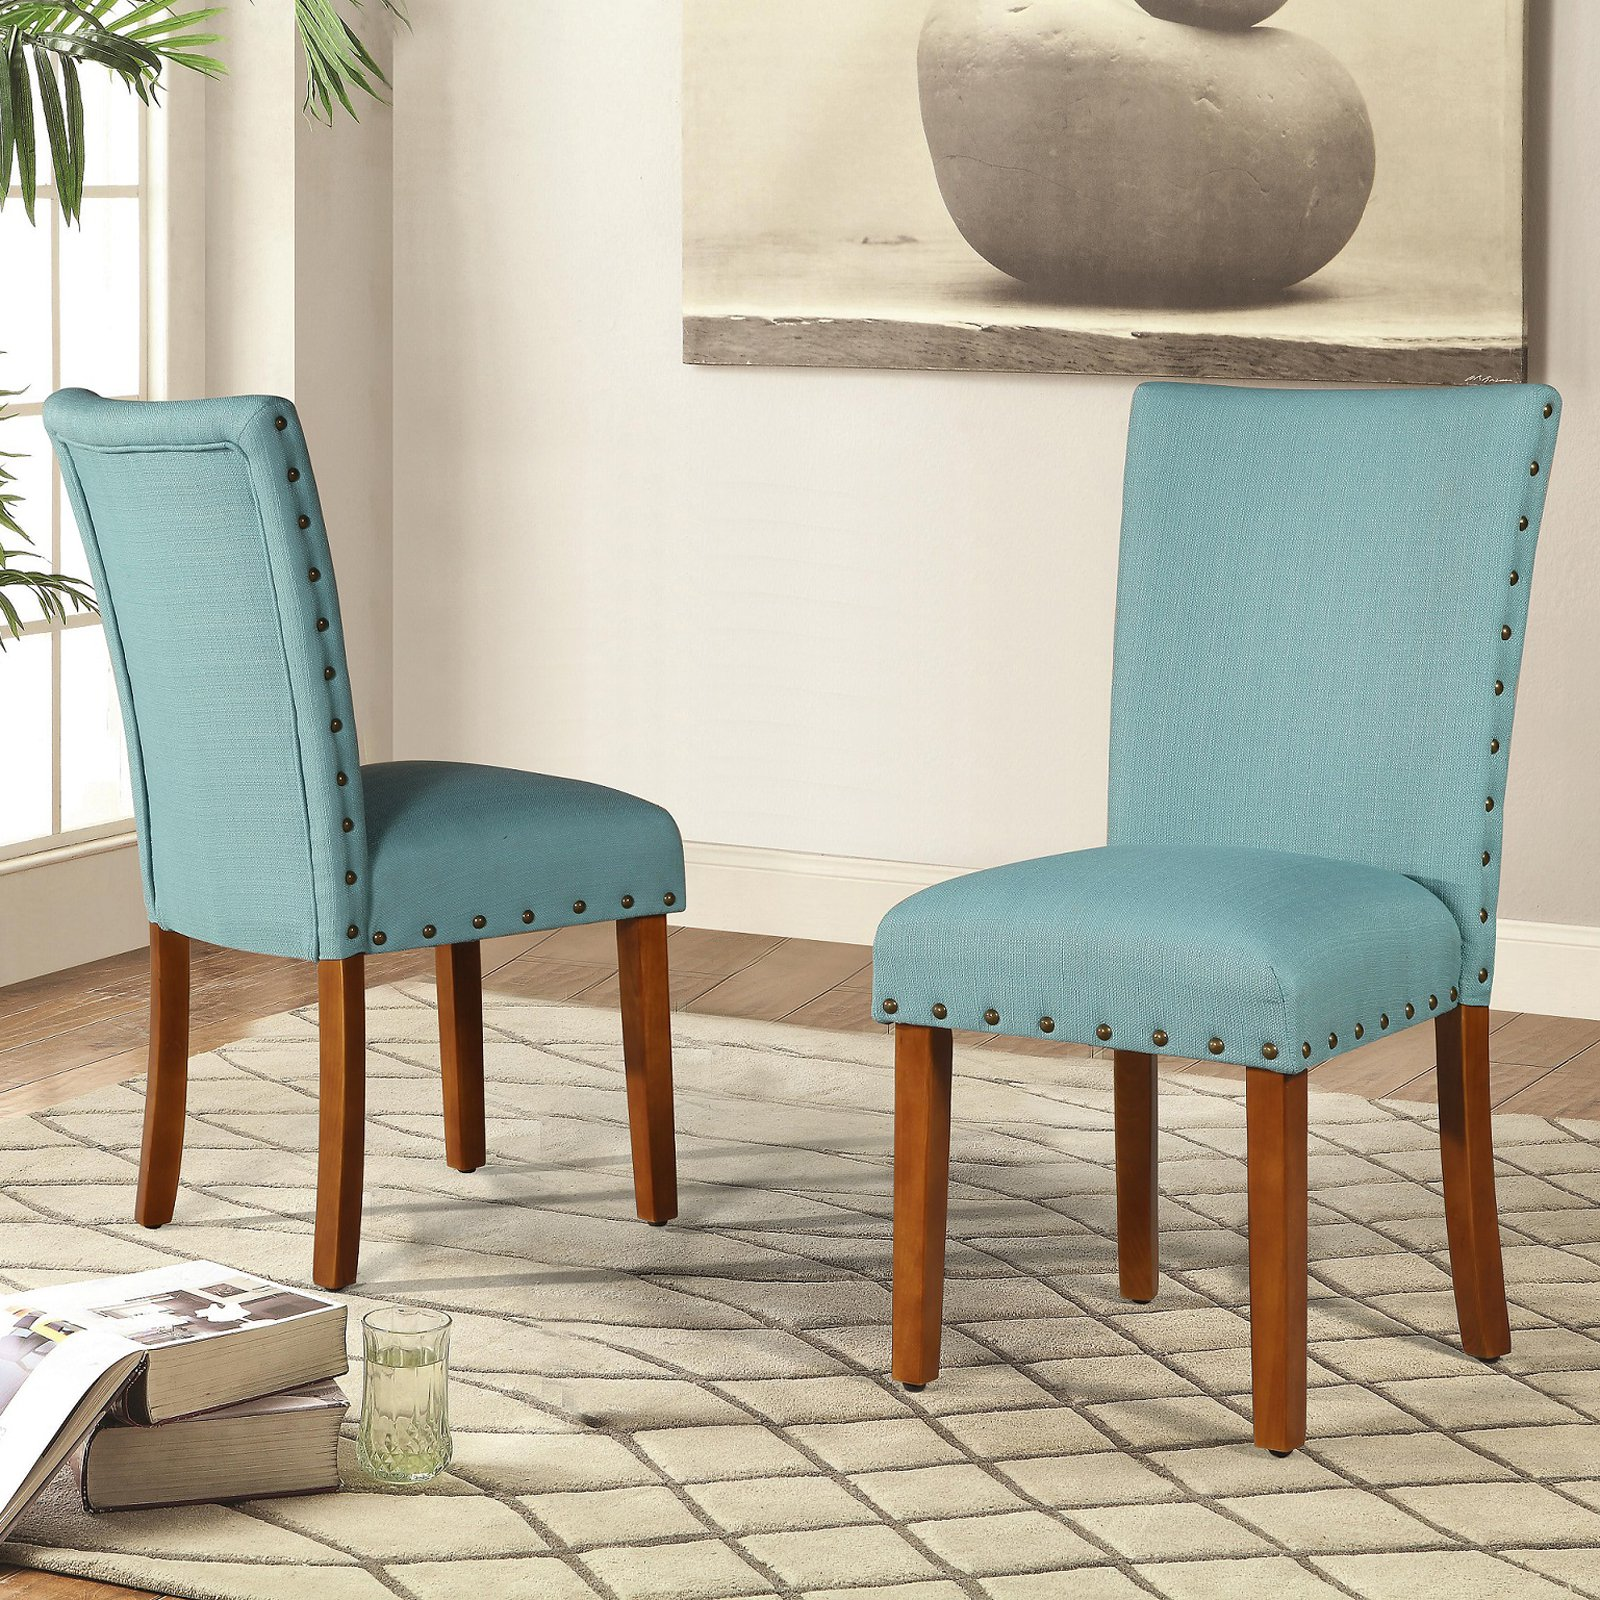 Roundhill Elliya Fabric with Nailheads Parsons Chairs, Set of 2, Multiple Colors Available